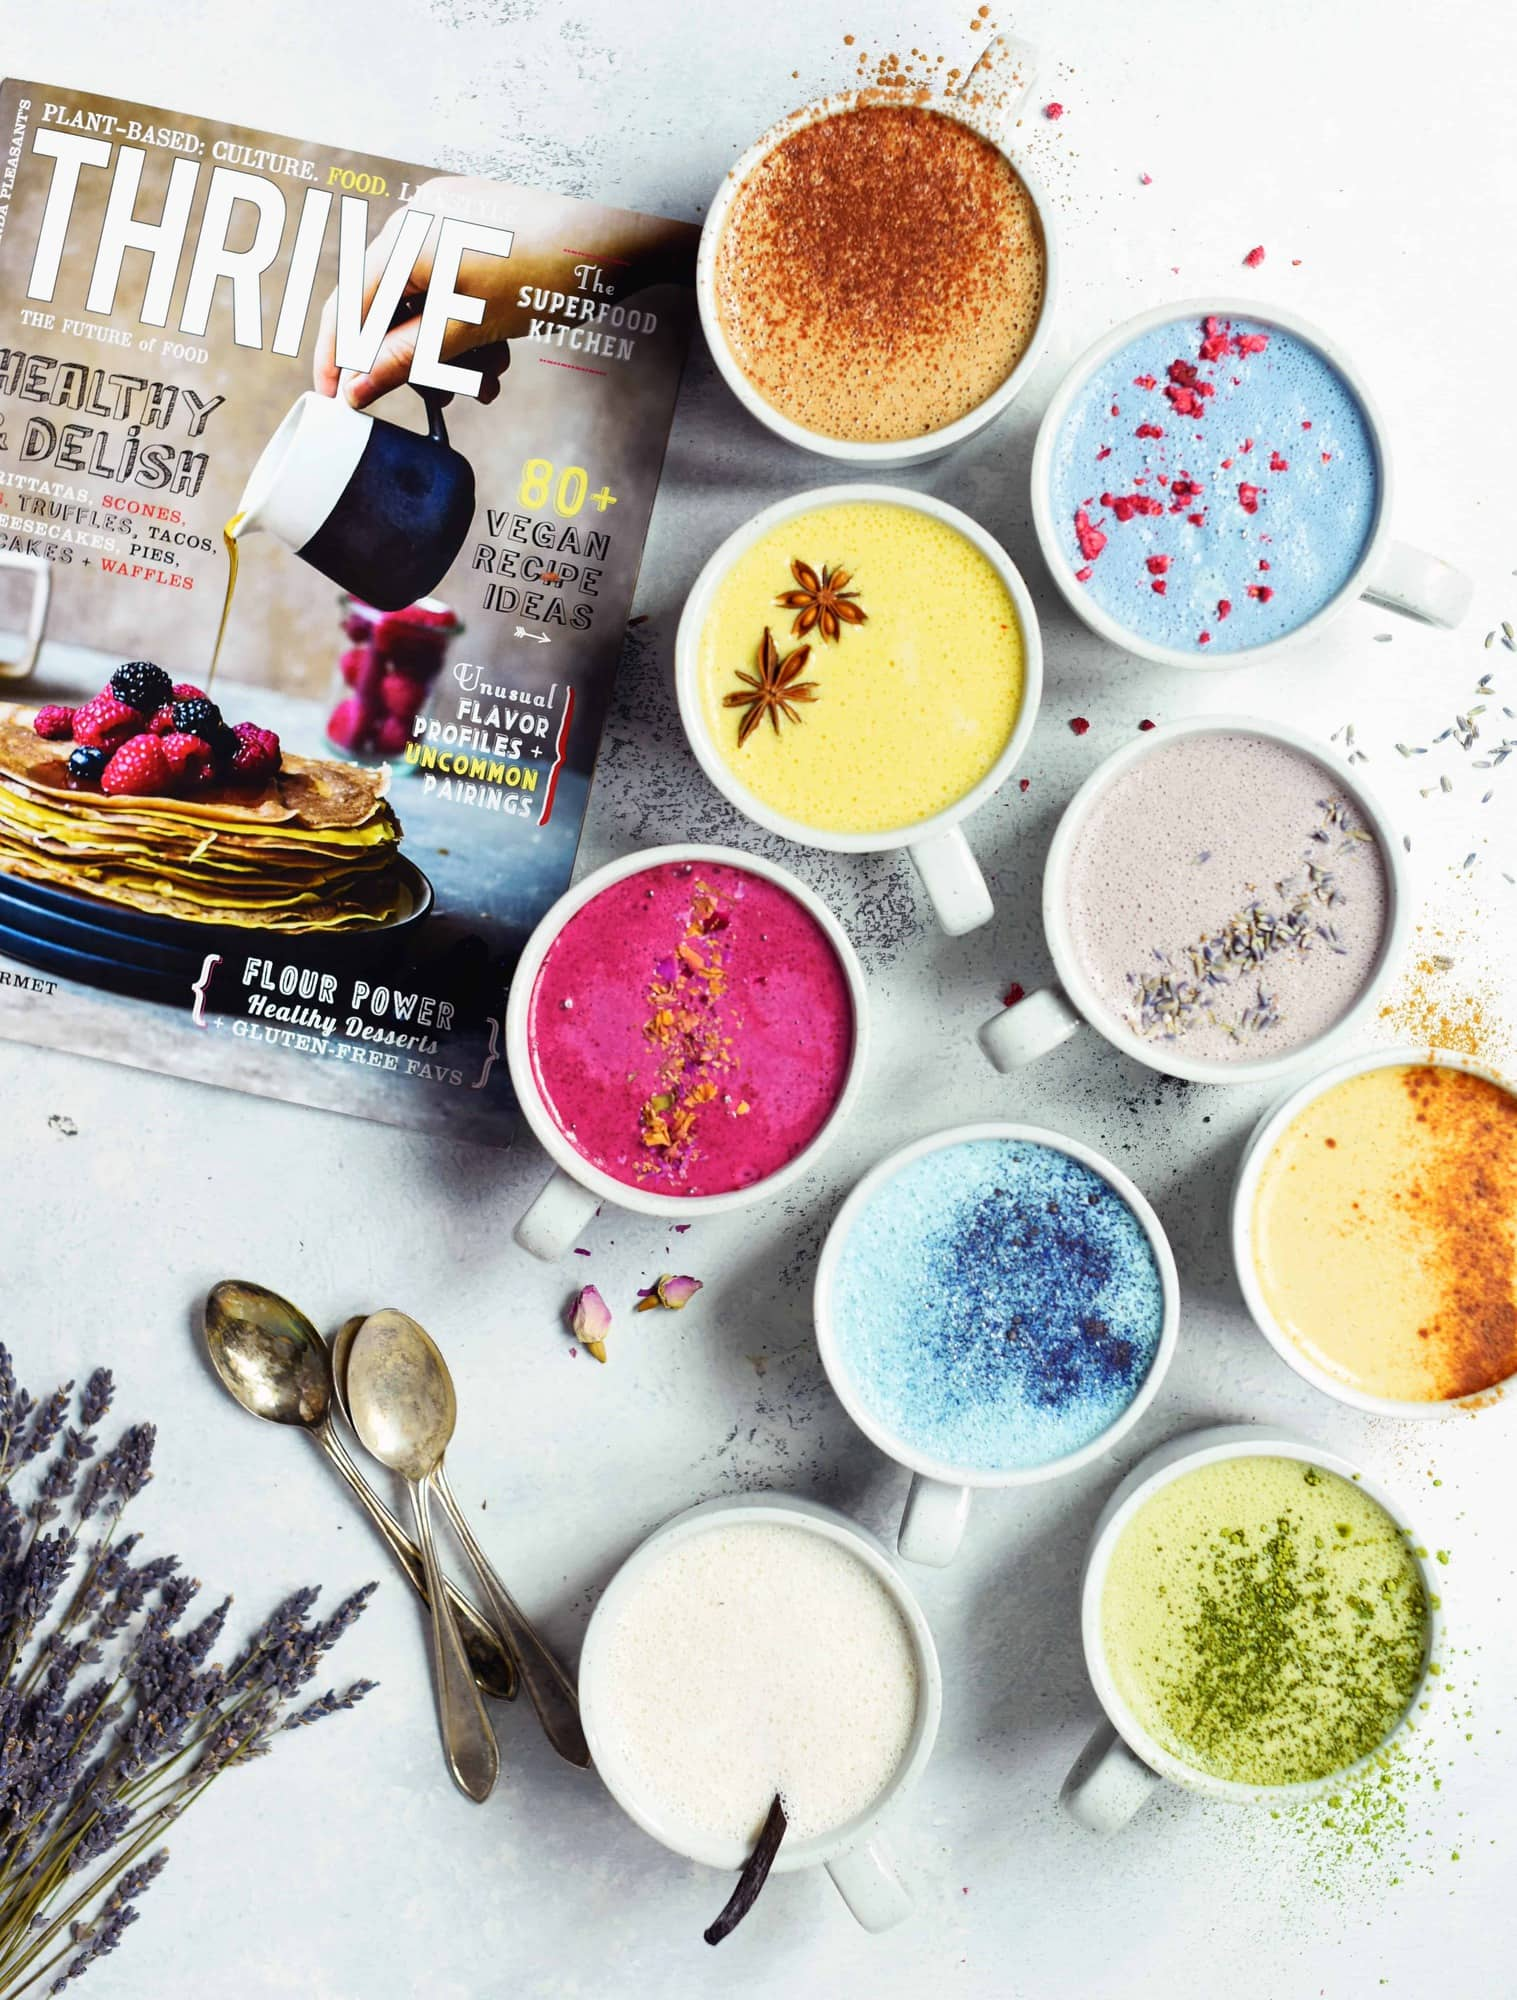 Overhead of naturally colored lattes in white mugs on white background next to Thrive magazine